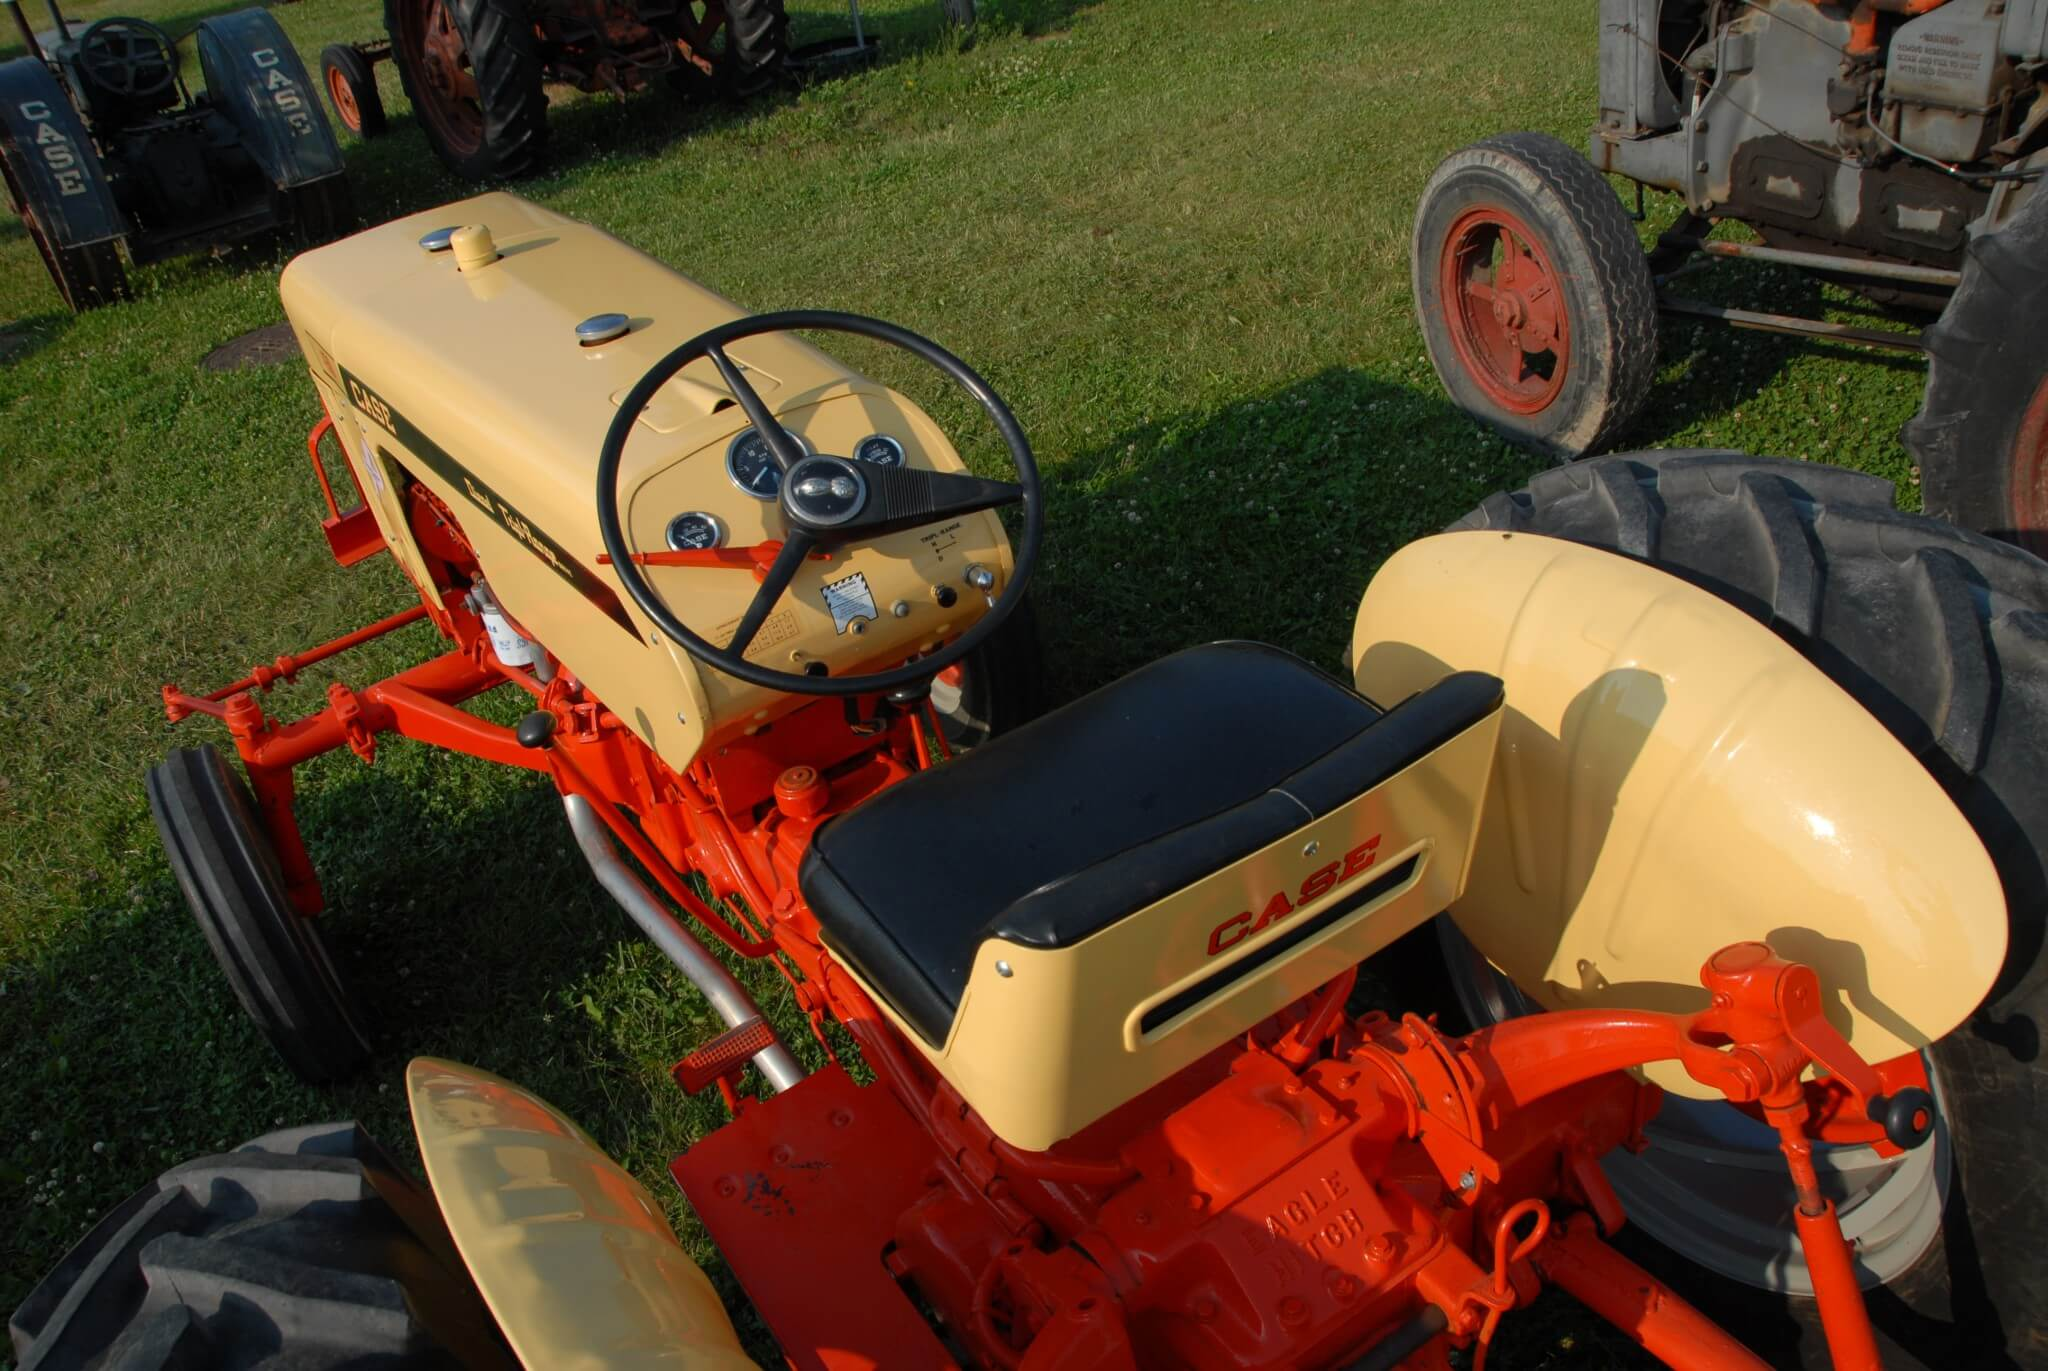 There was nothing particularly impressive about the 430's seating arrangement. The seat was a little better than most but without a substantial back. The controls were well positioned, though. Note the hand clutch, the long lever to the left of the steering wheel. In the rearward position, the transmission was disengaged but the PTO retained power flow. This enables the tractor to be stopped without interrupting power to PTO-driven implements.